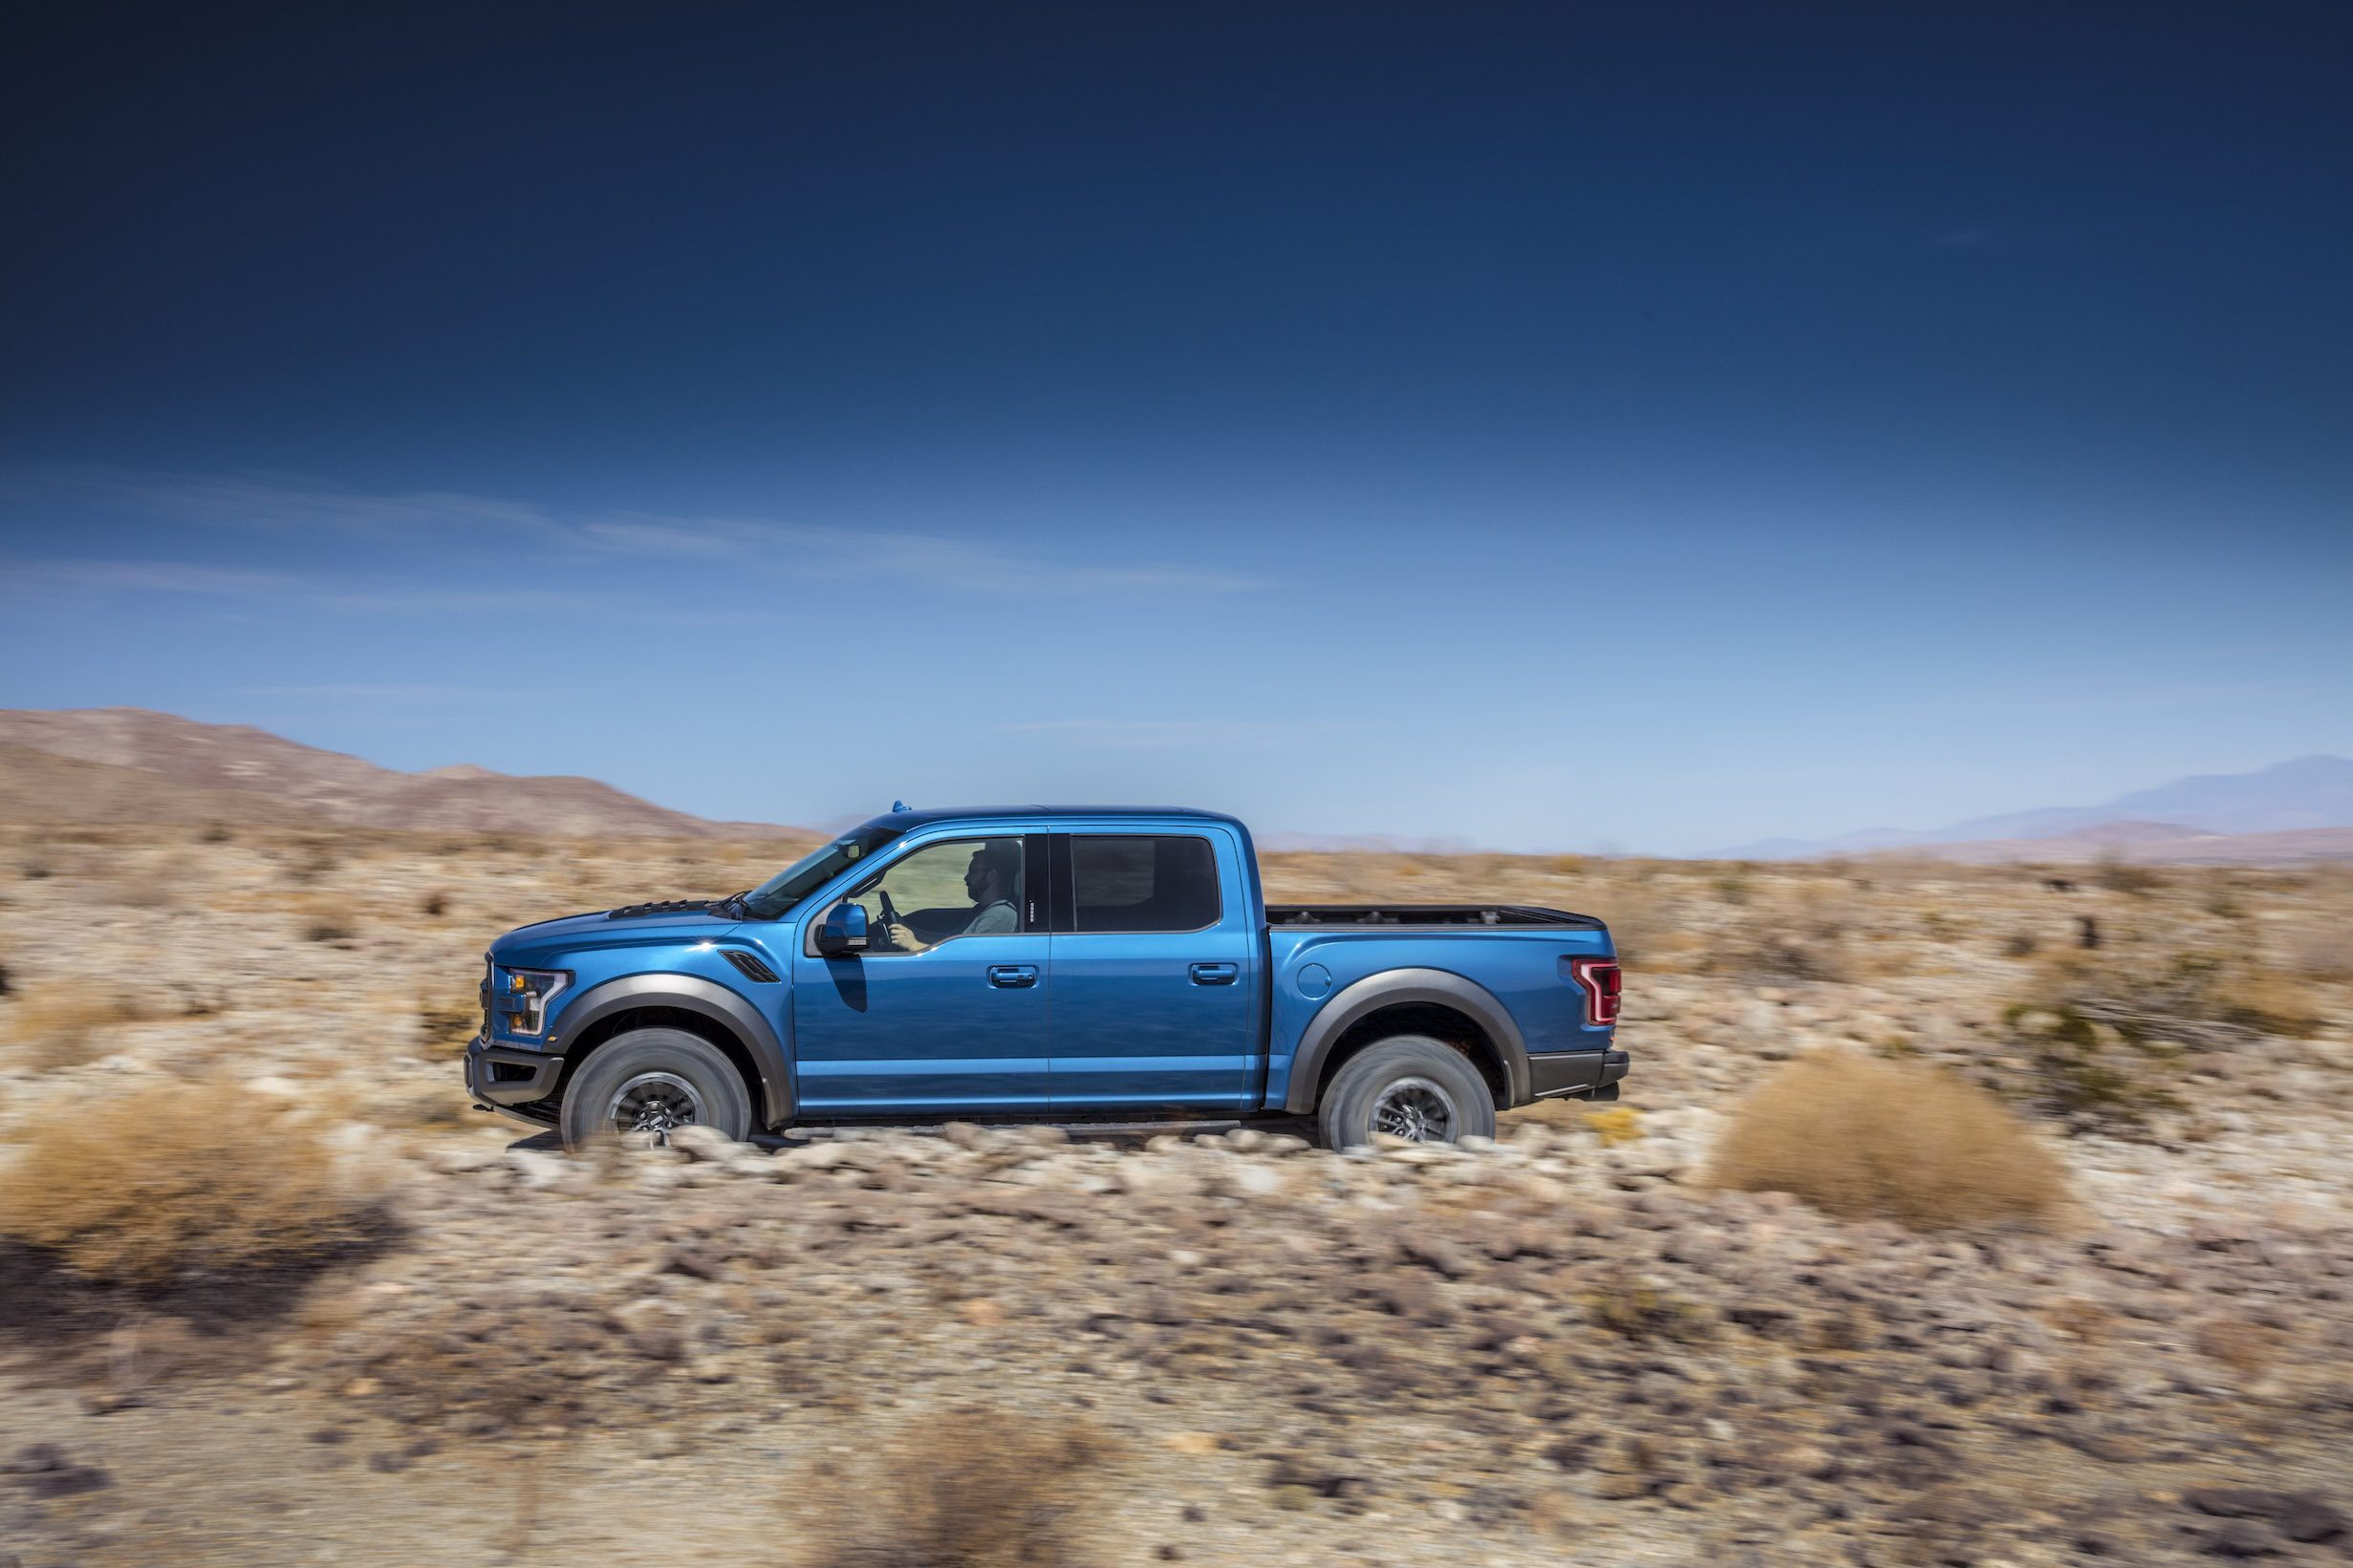 2019 Ford F-150 Raptor Side view off road